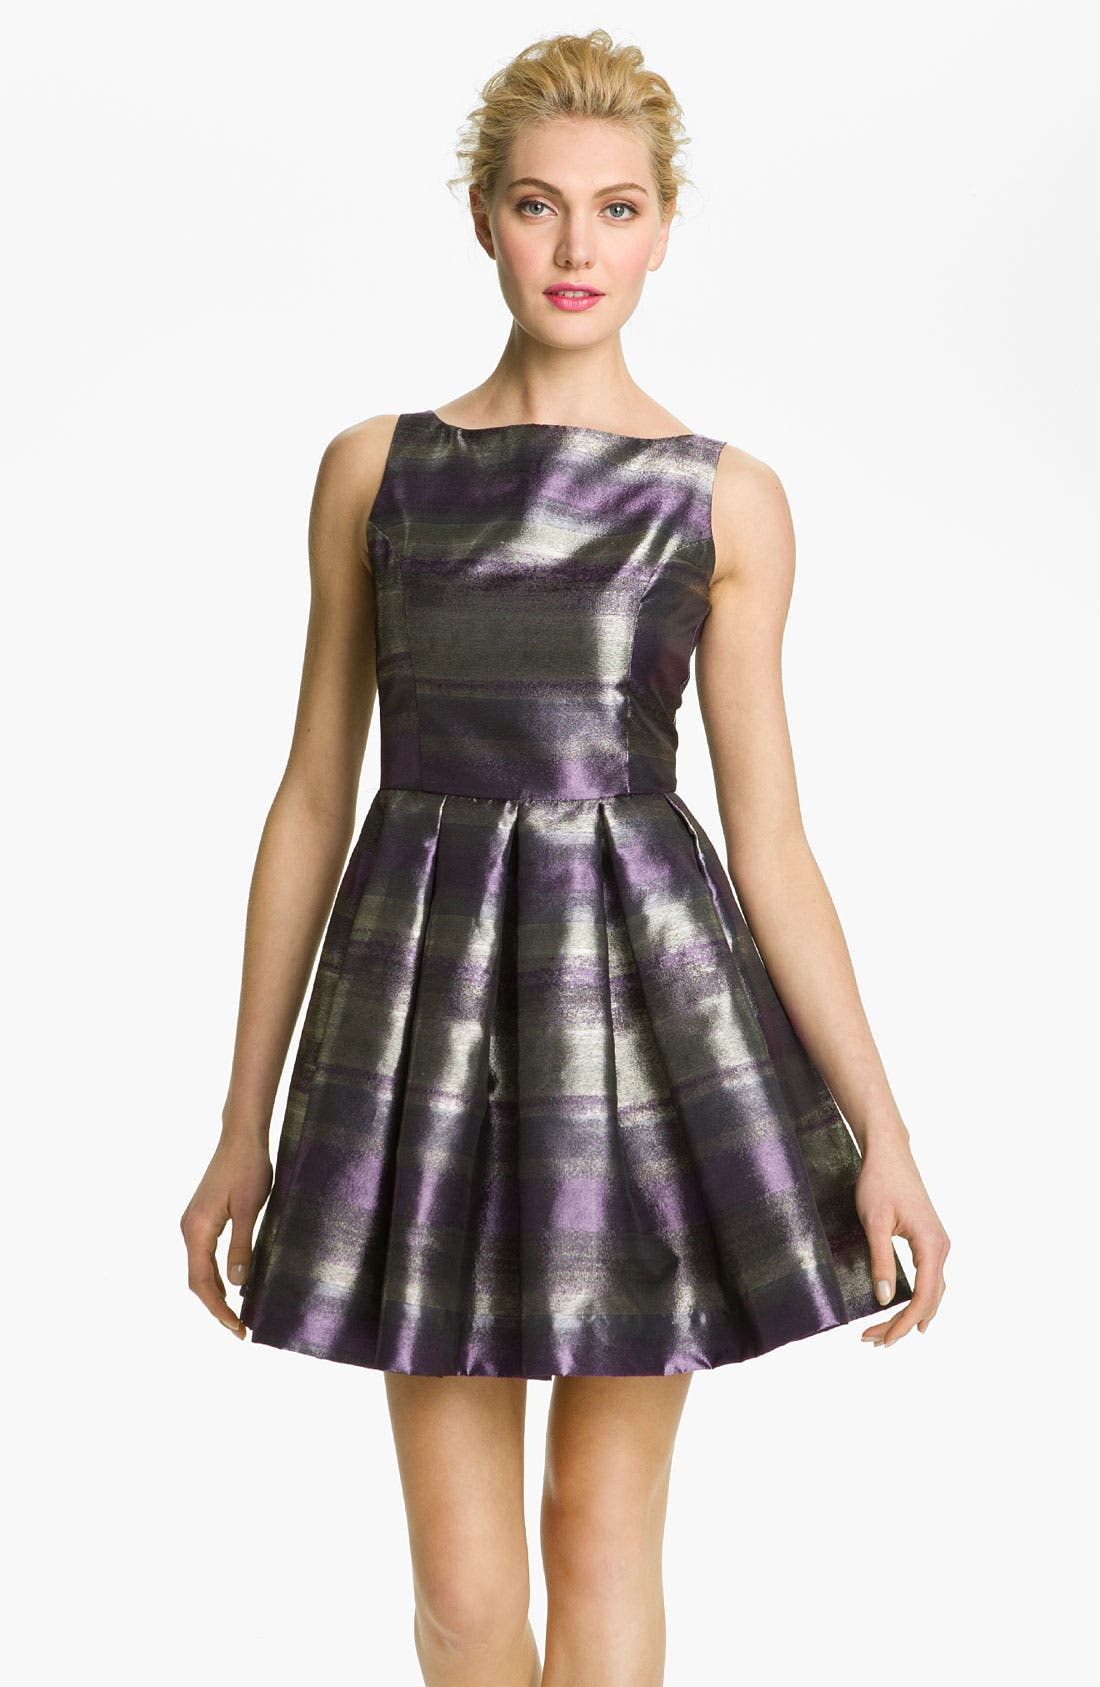 Alternate Image 1 Selected - BB Dakota 'Jensine' Metallic Taffeta Fit & Flare Dress